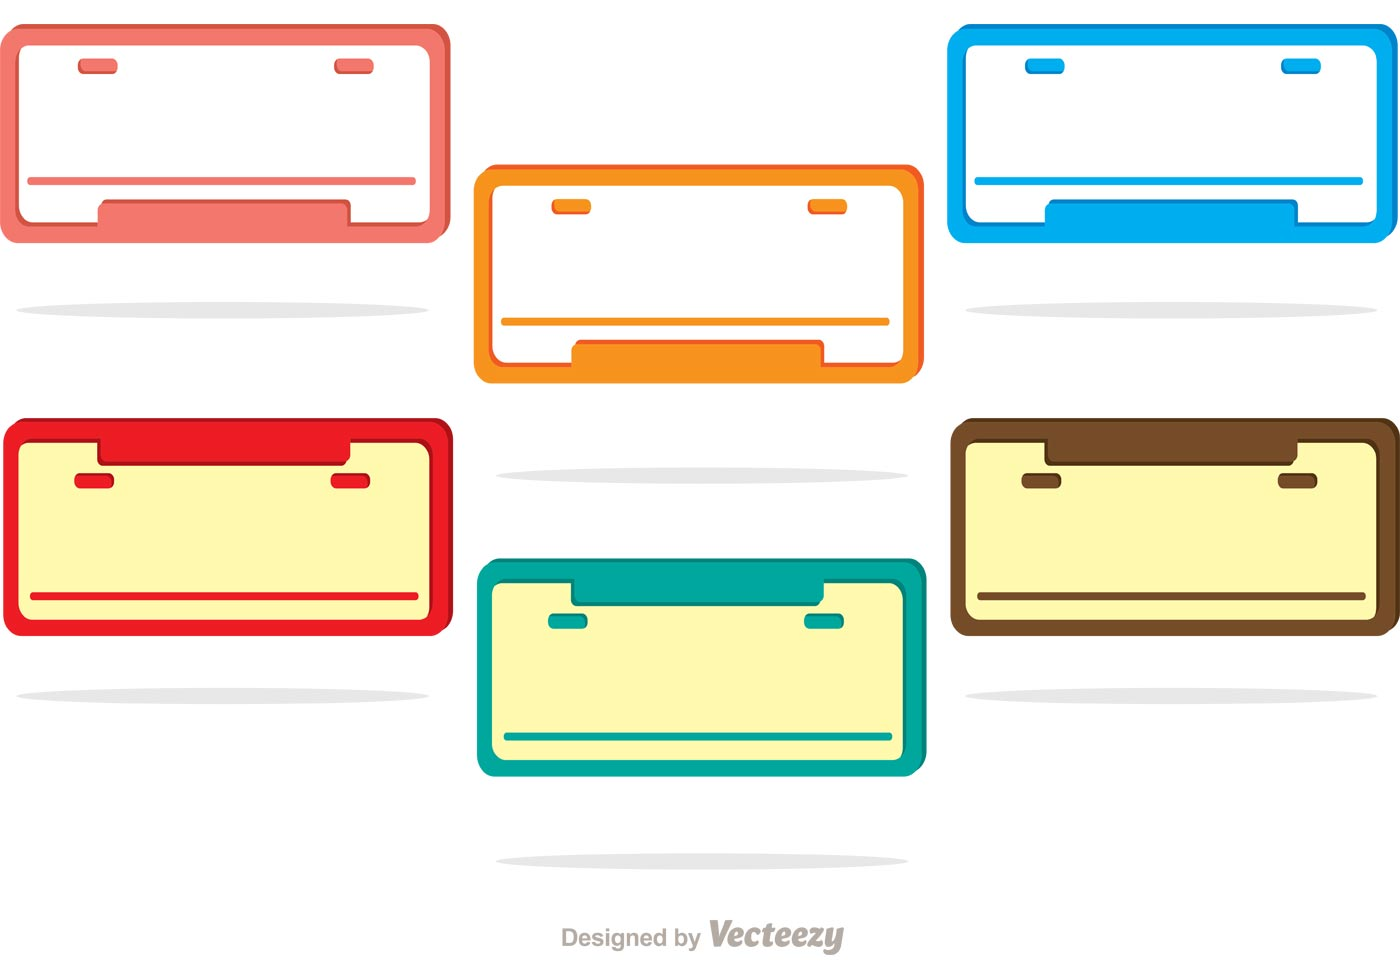 Aluminum License Plate Frame >> License Plate Vectors - Download Free Vector Art, Stock Graphics & Images